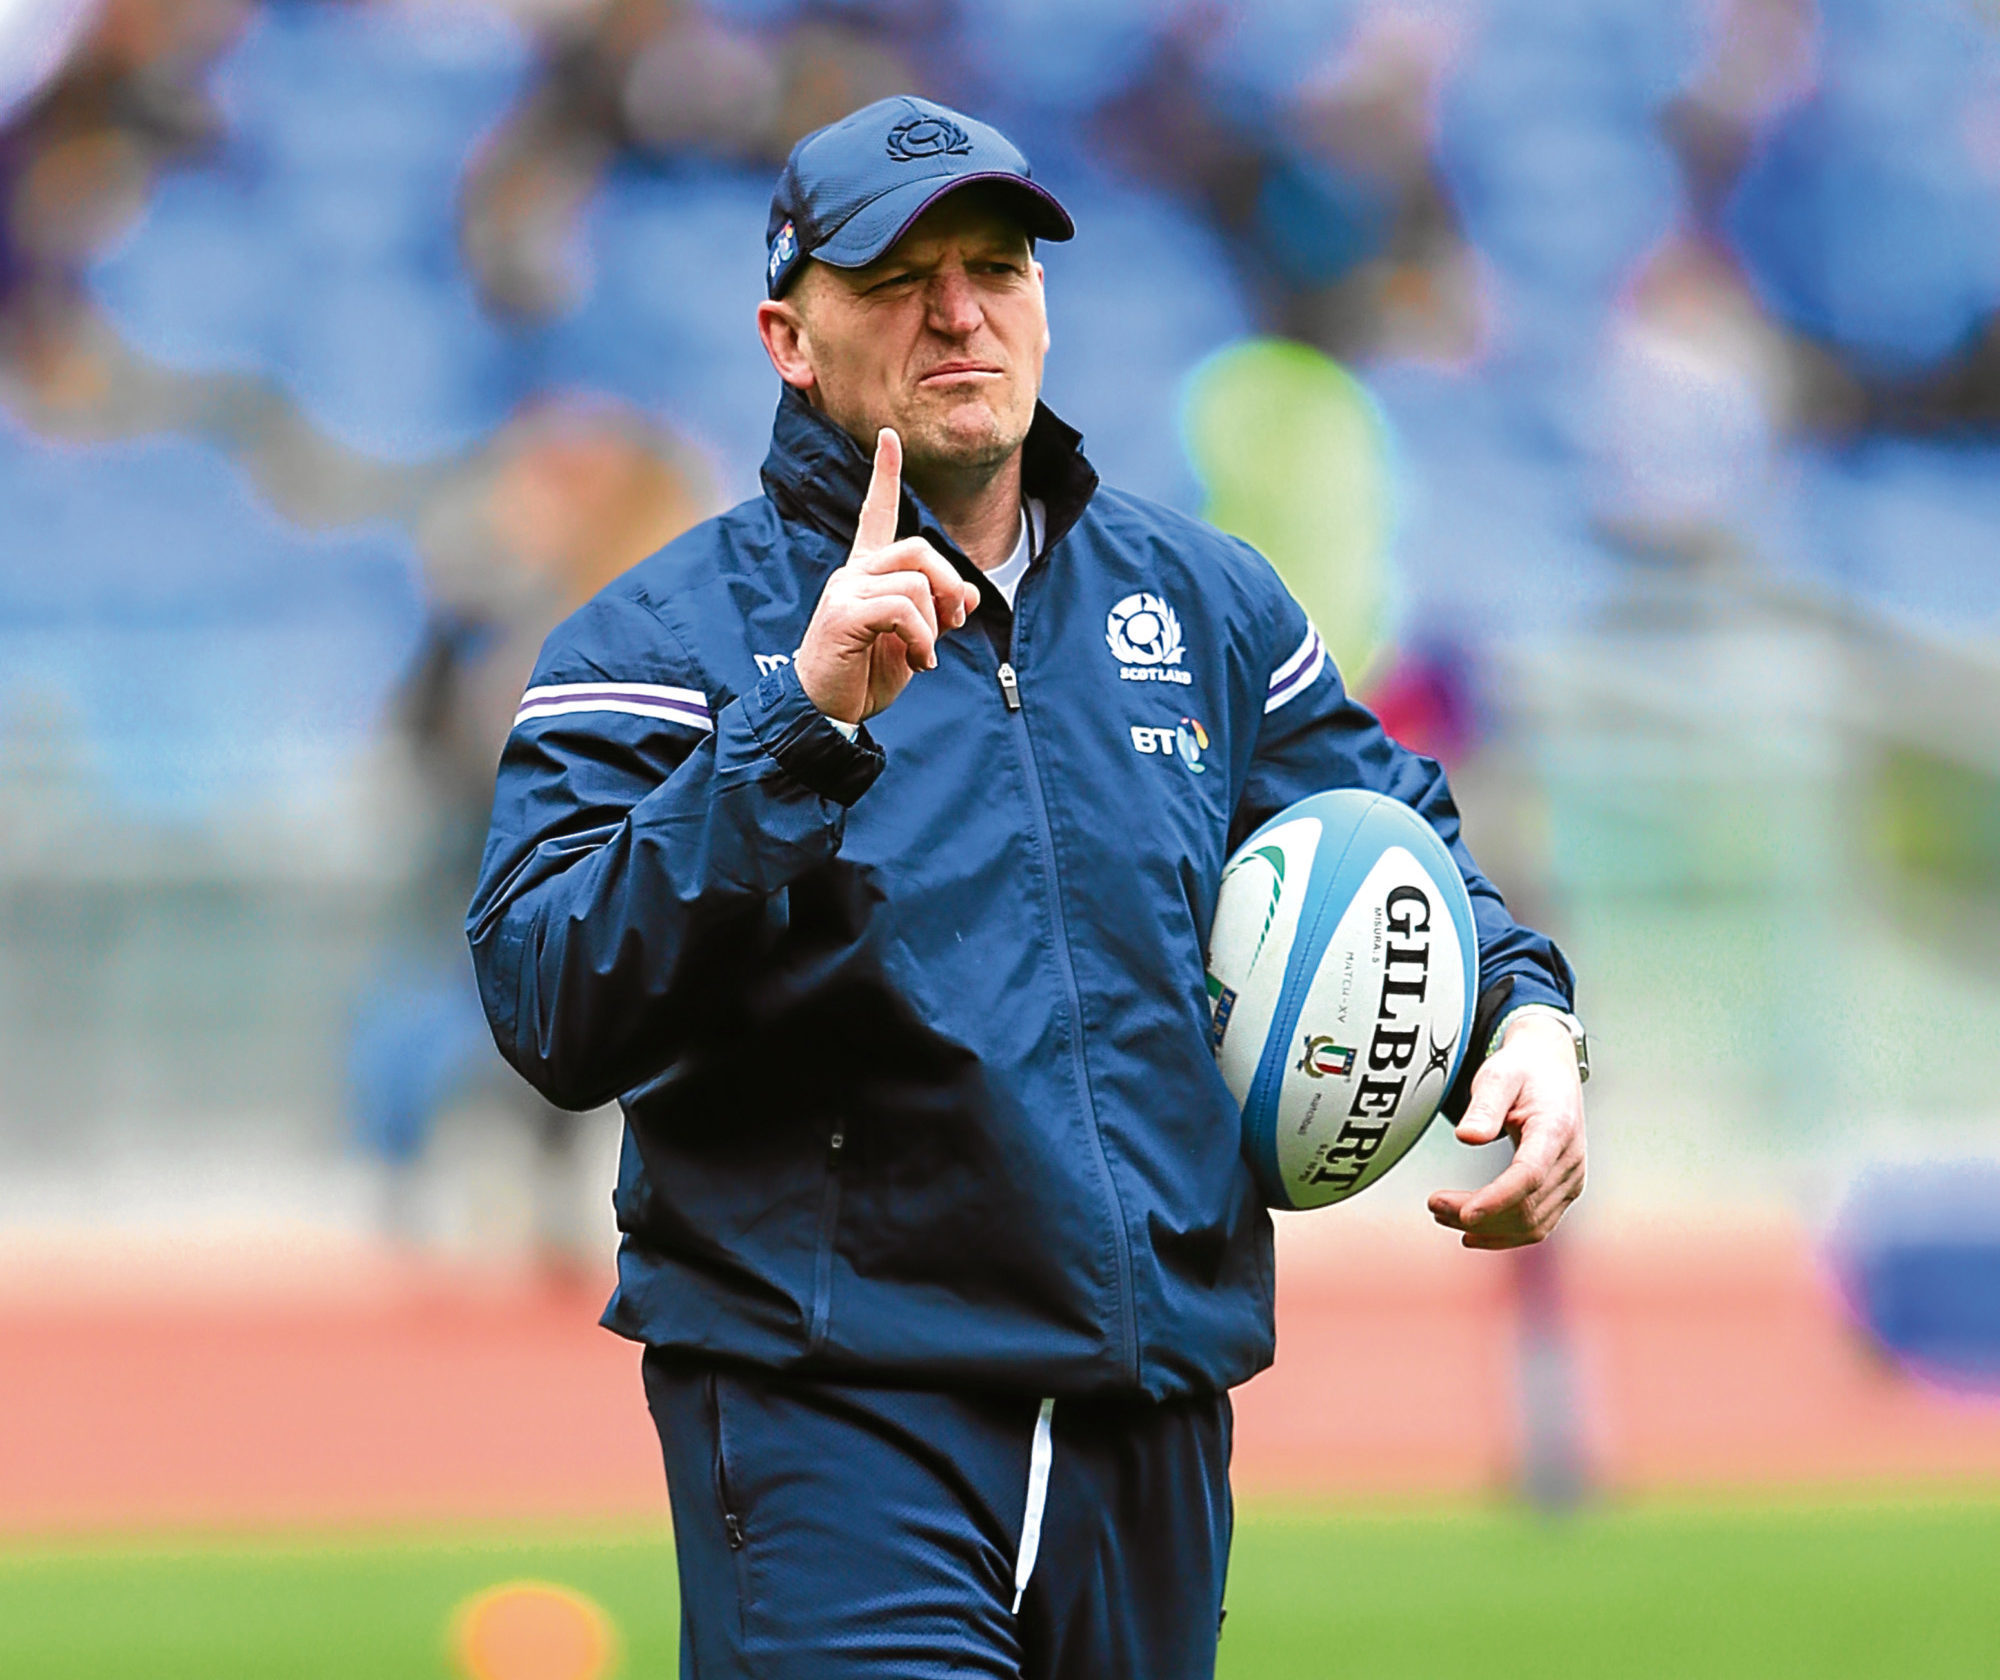 Gregor Townsend, head coach of Scotland.